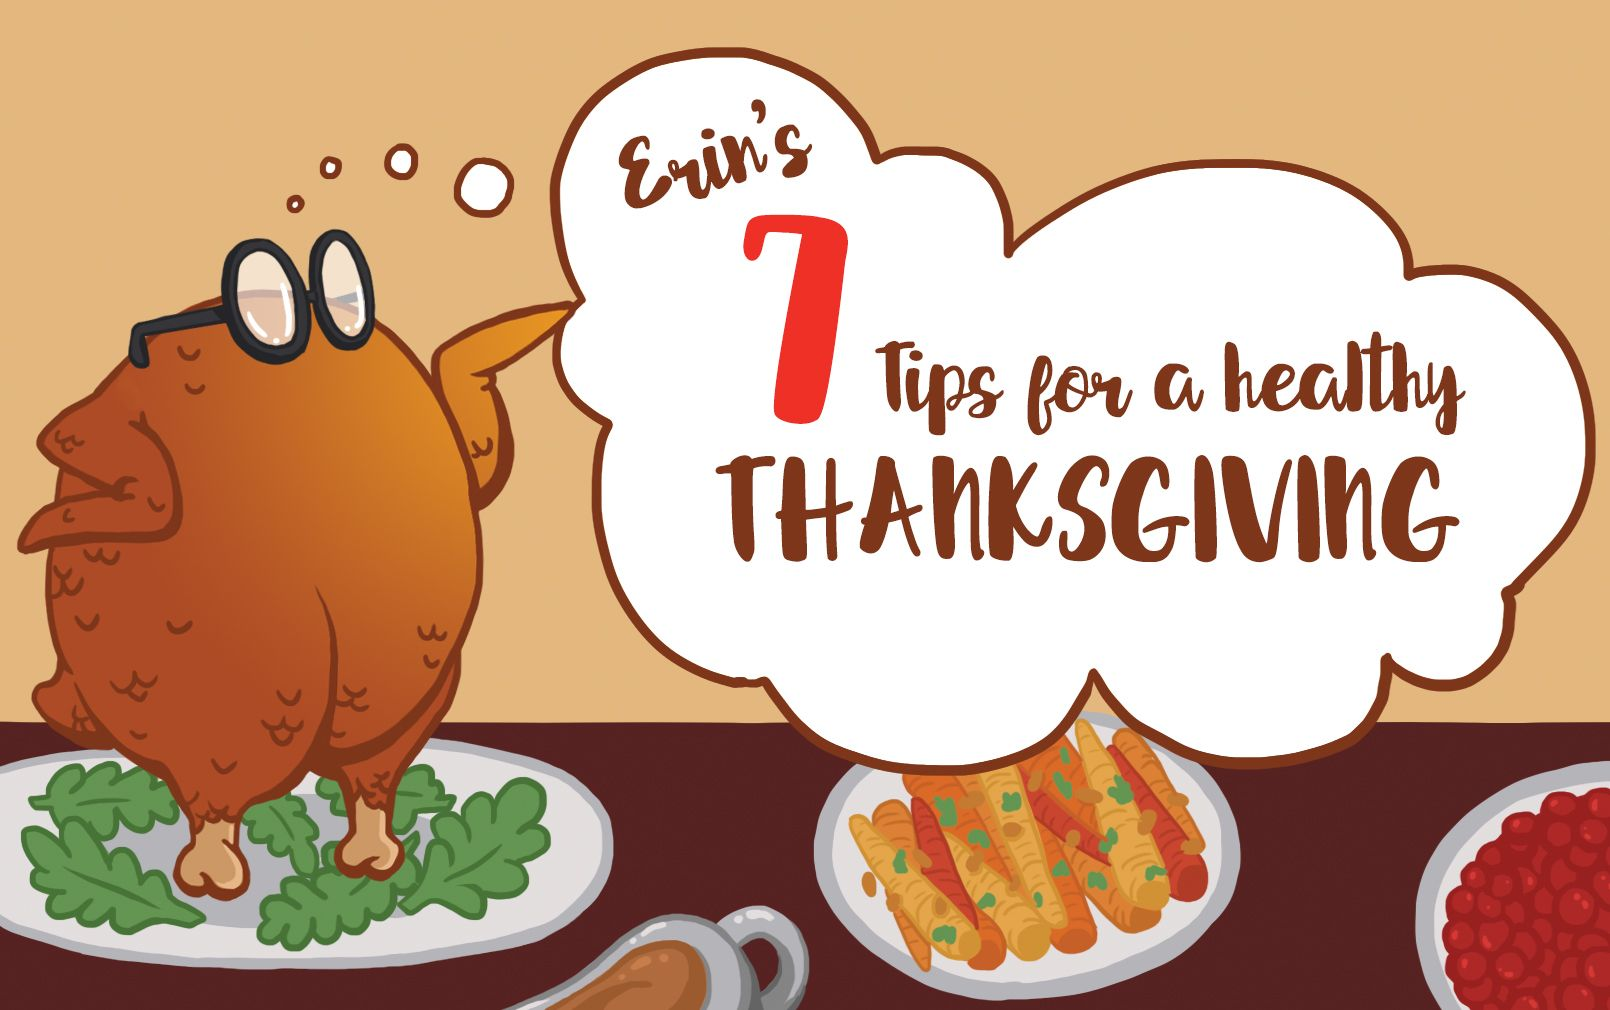 Easy tips for a healthy Thanksgiving and holiday season! Even with a busy schedule, these are easy to fit into your day!